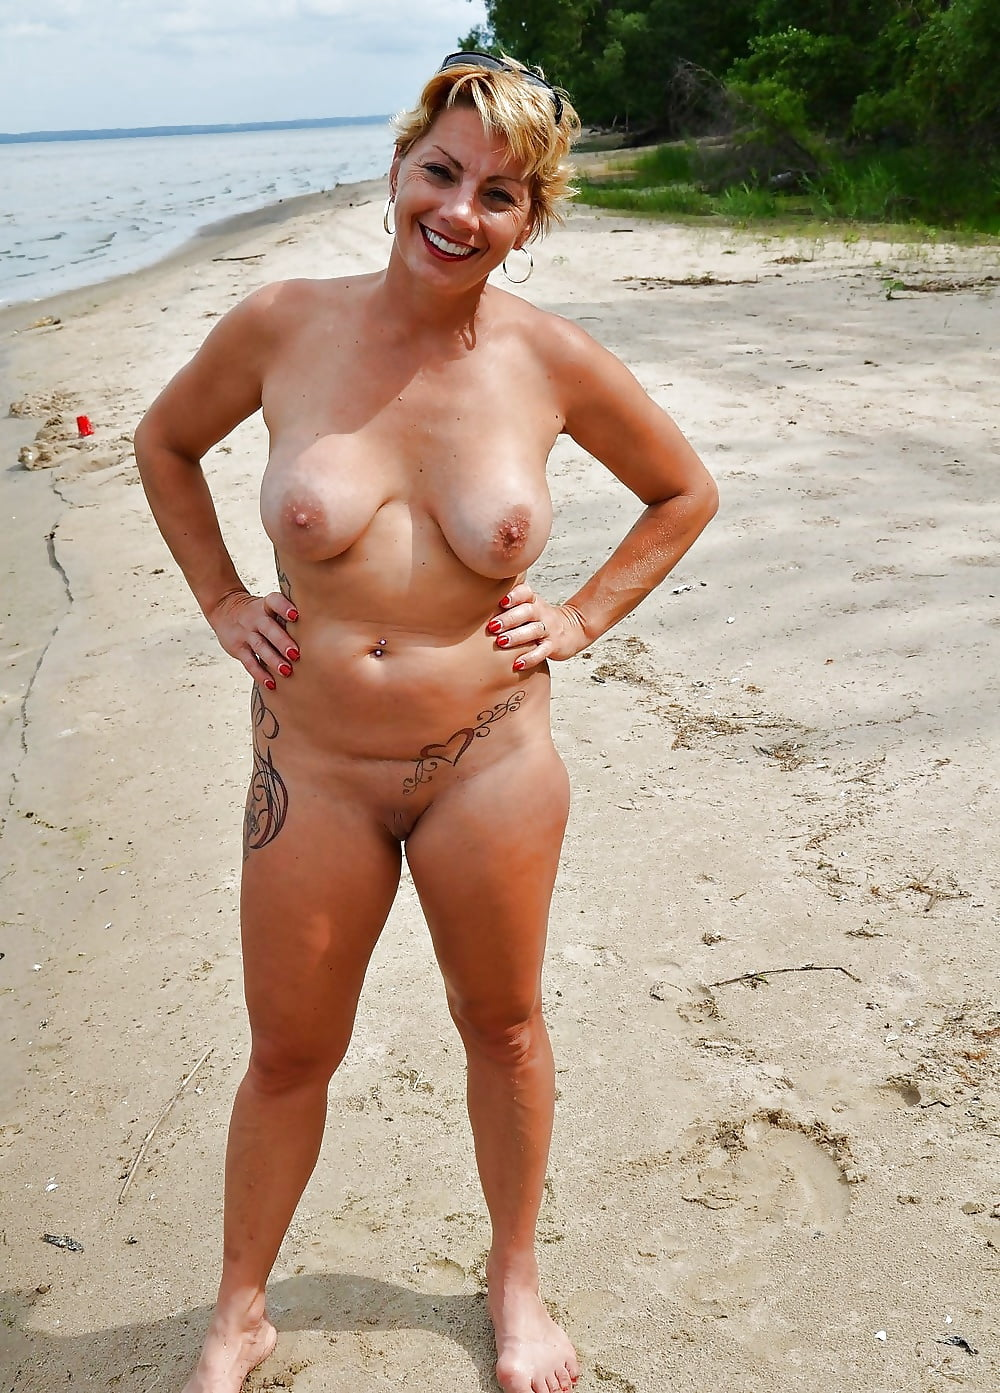 chubby-mom-at-beach-nude-galleries-of-hot-sex-smokin